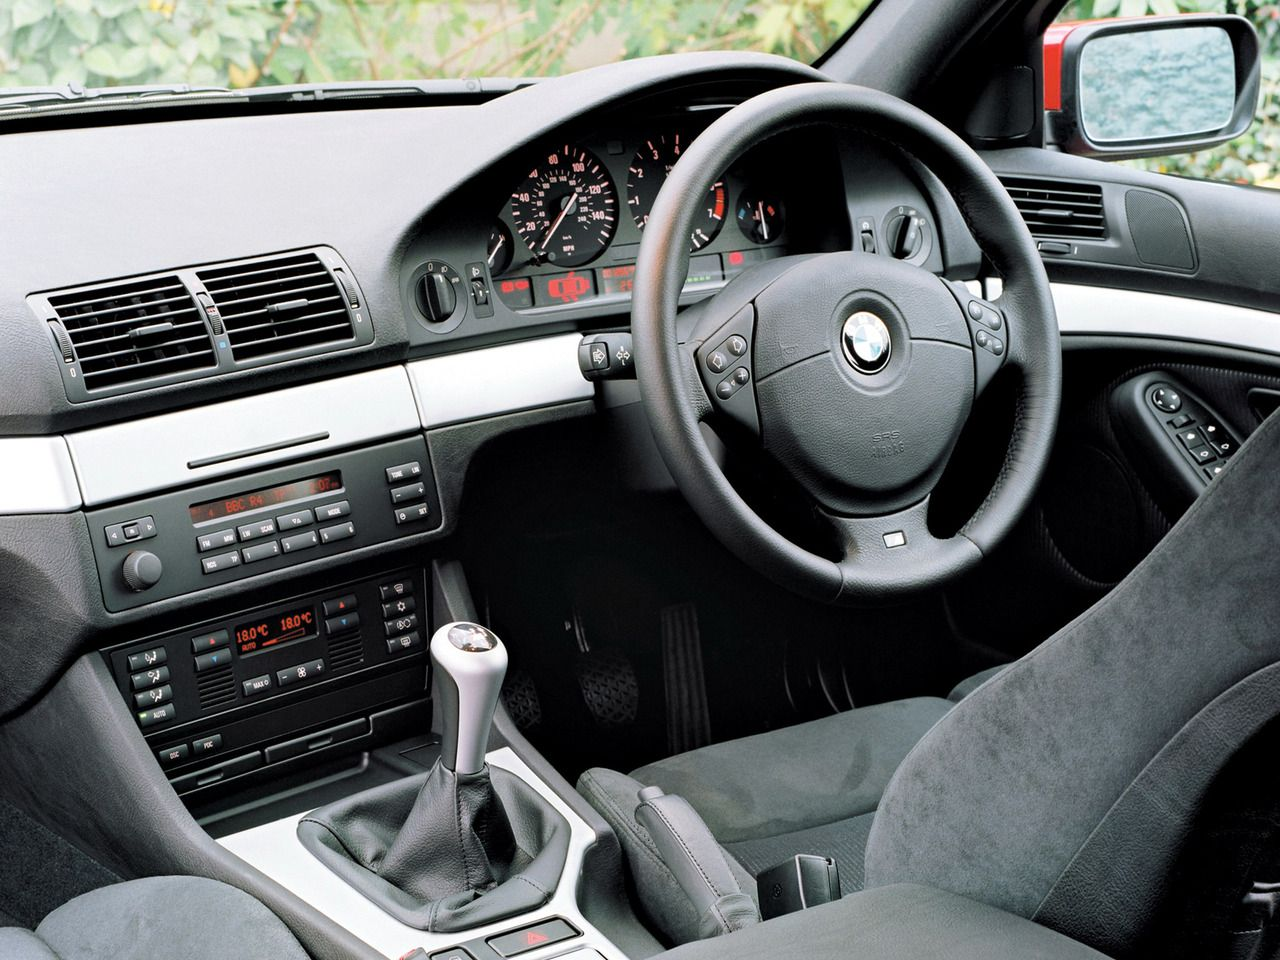 2002 bmw 525i touring m sports package [ 1280 x 960 Pixel ]